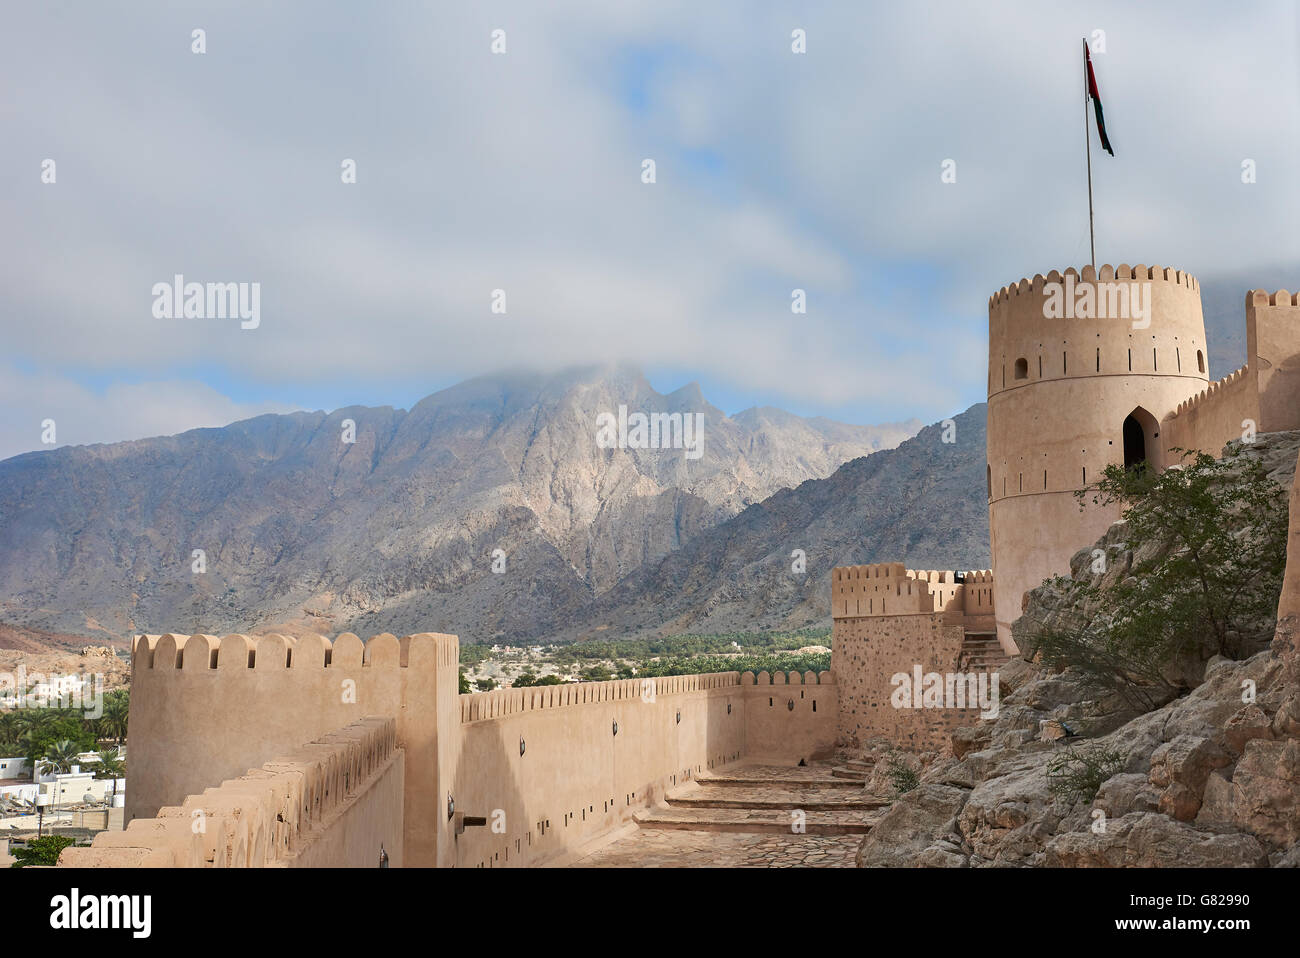 Watch tower of an ancient fort in oman against the backdrop of a blue sky Stock Photo